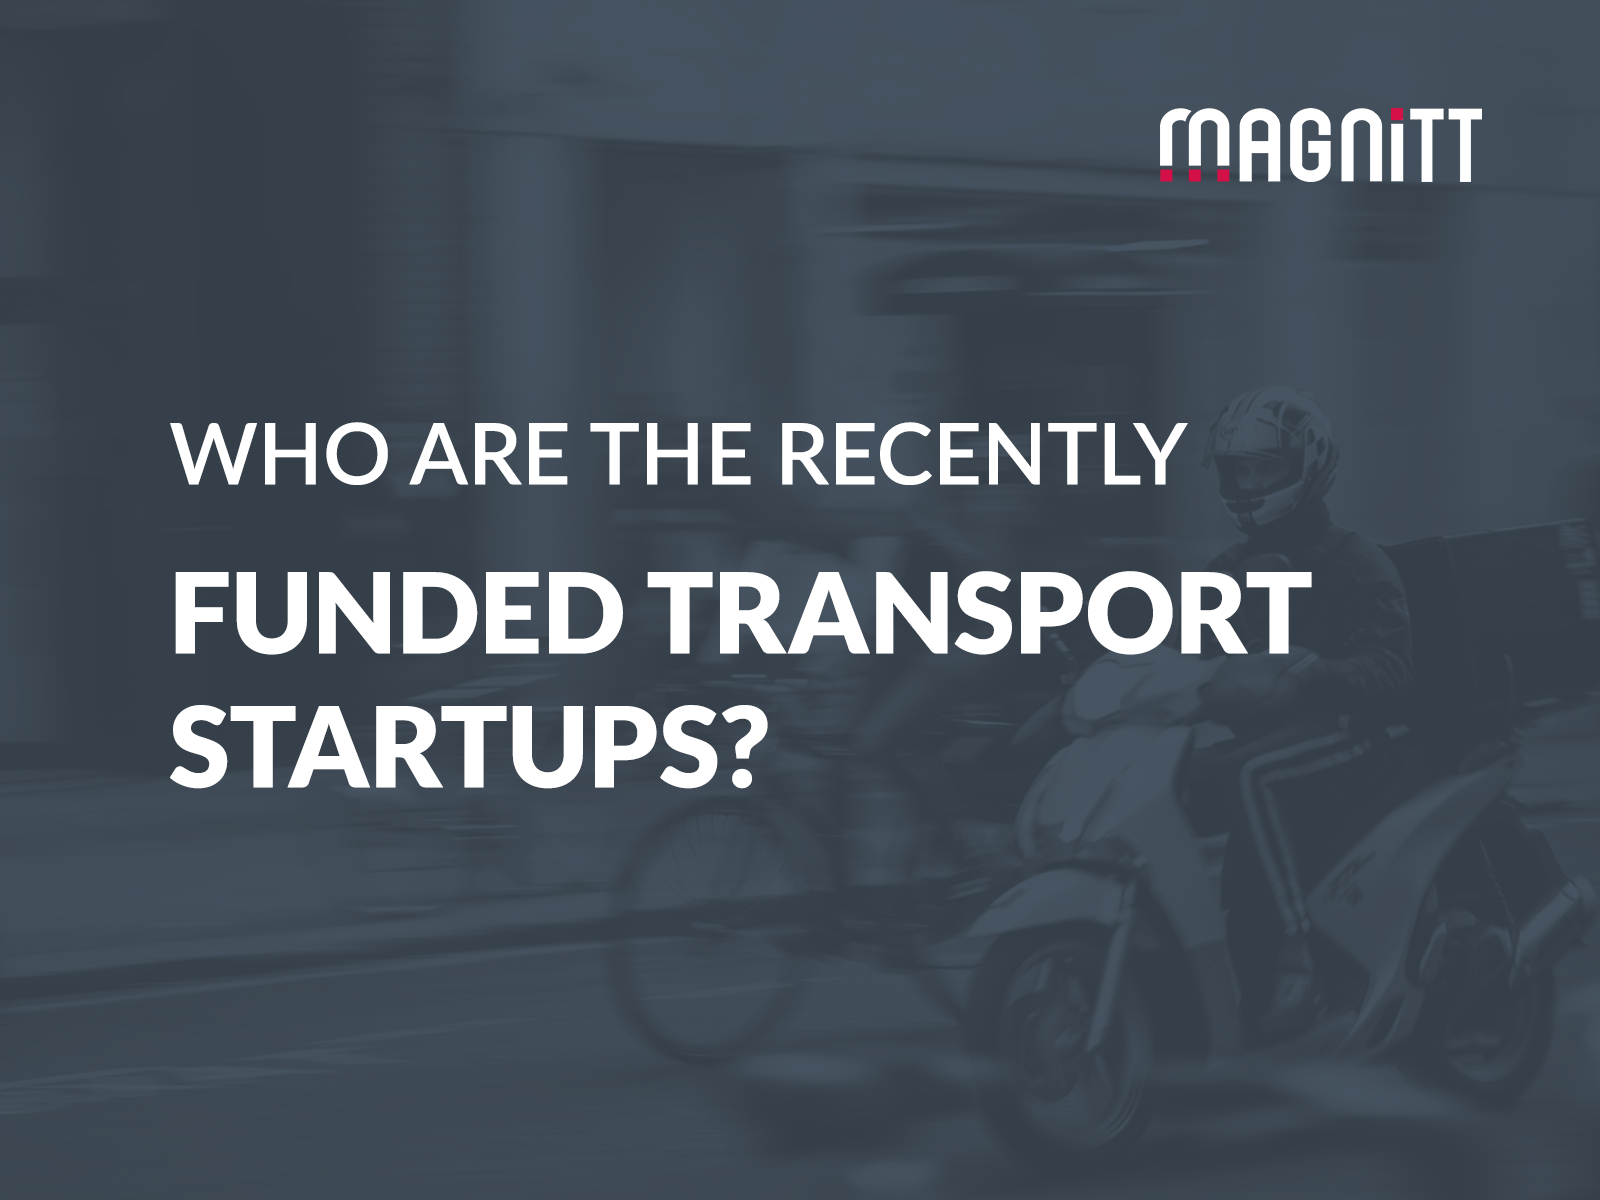 Transformative Transport: The startups headlining the industry's growth